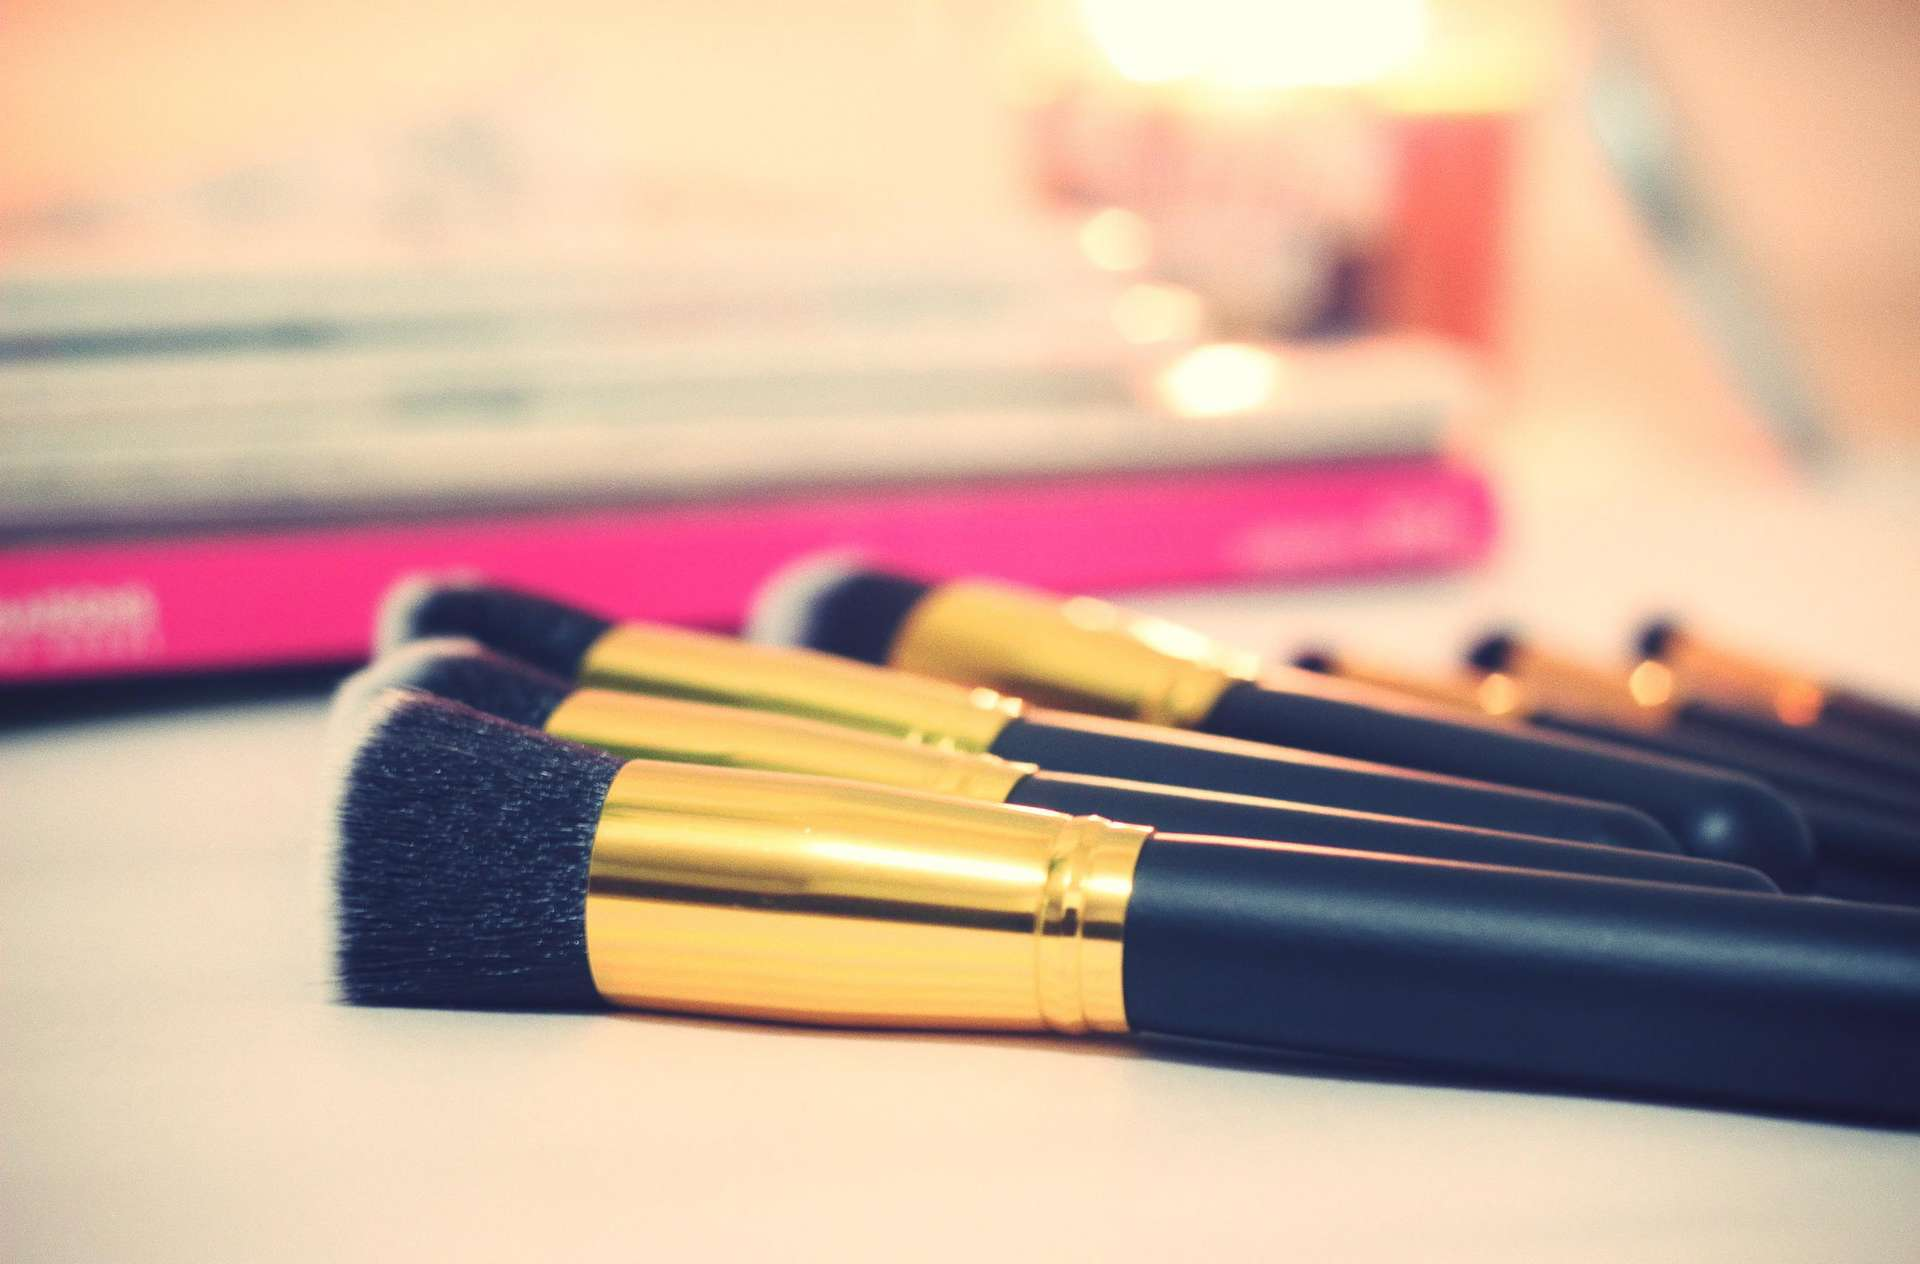 Make-up-brushes-facebrushes-eyebrushes-beauty-blackbeautyblogger-ctbb